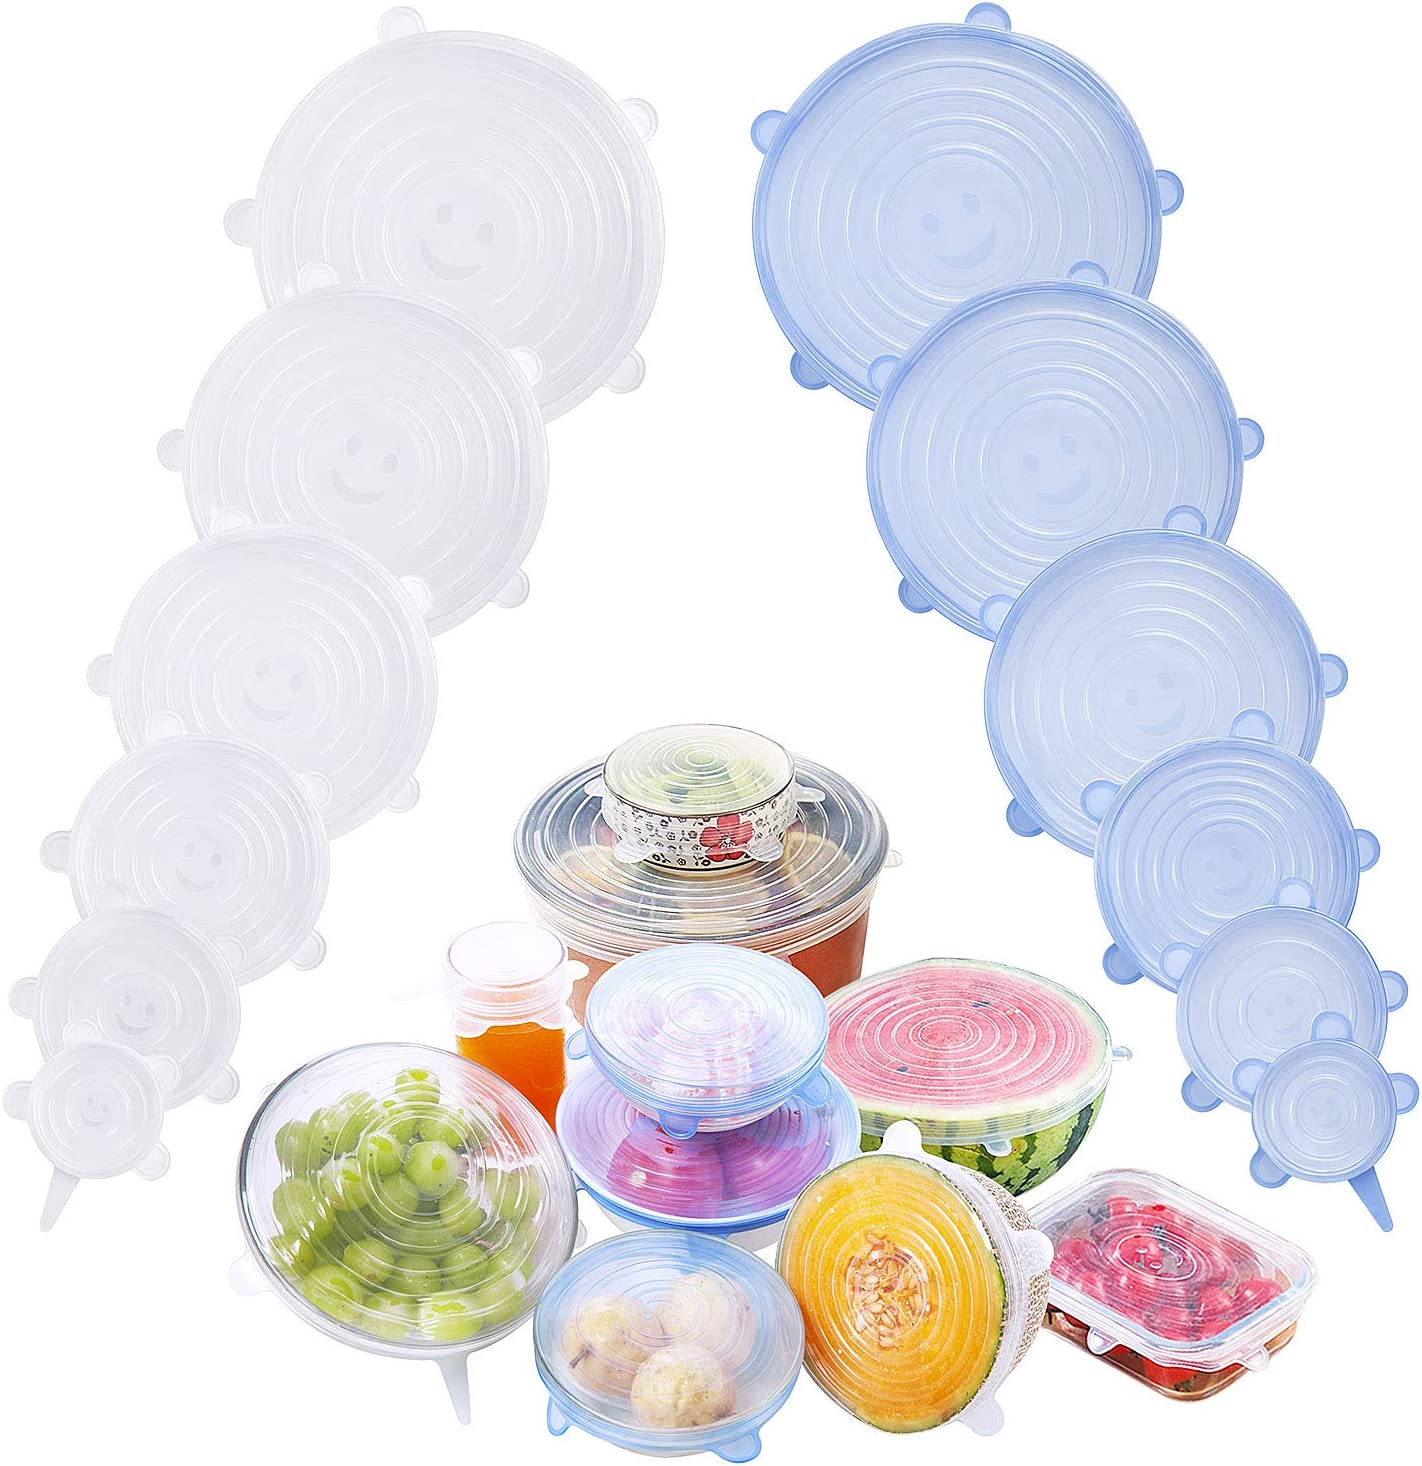 Silicone Stretch Lids 12 Pack,Silicone Stretch Lids and Food Covers BPA-Free Food Grade Silicone Eco-Friendly Reusable Durable and Expandable Lids Various Sizes & Shapes Cover for Food & Container